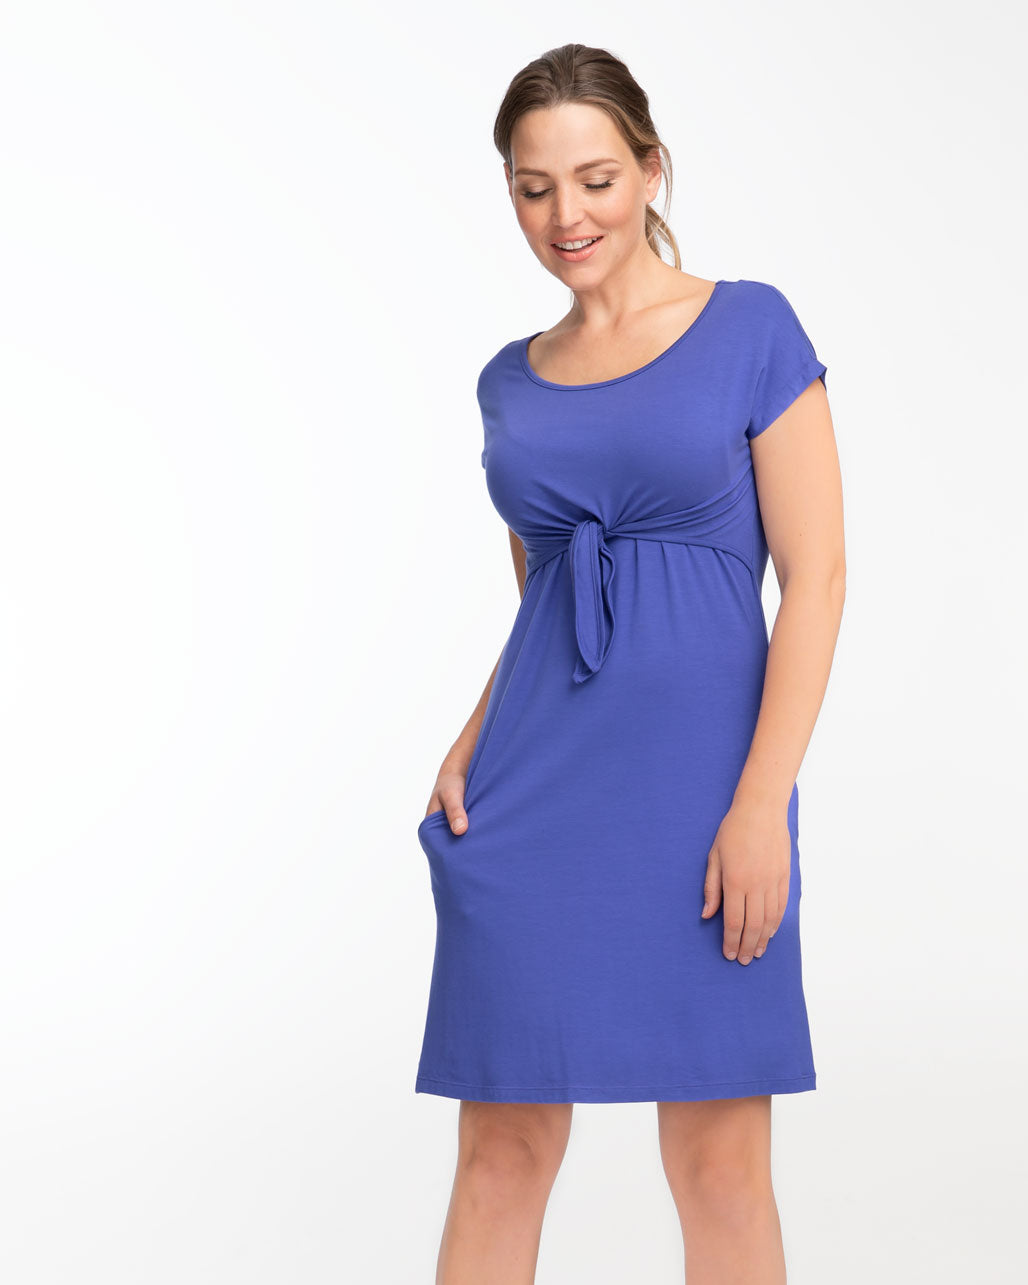 Blue Everyday Tie Front Nursing Dress by Peachymama - Denisa